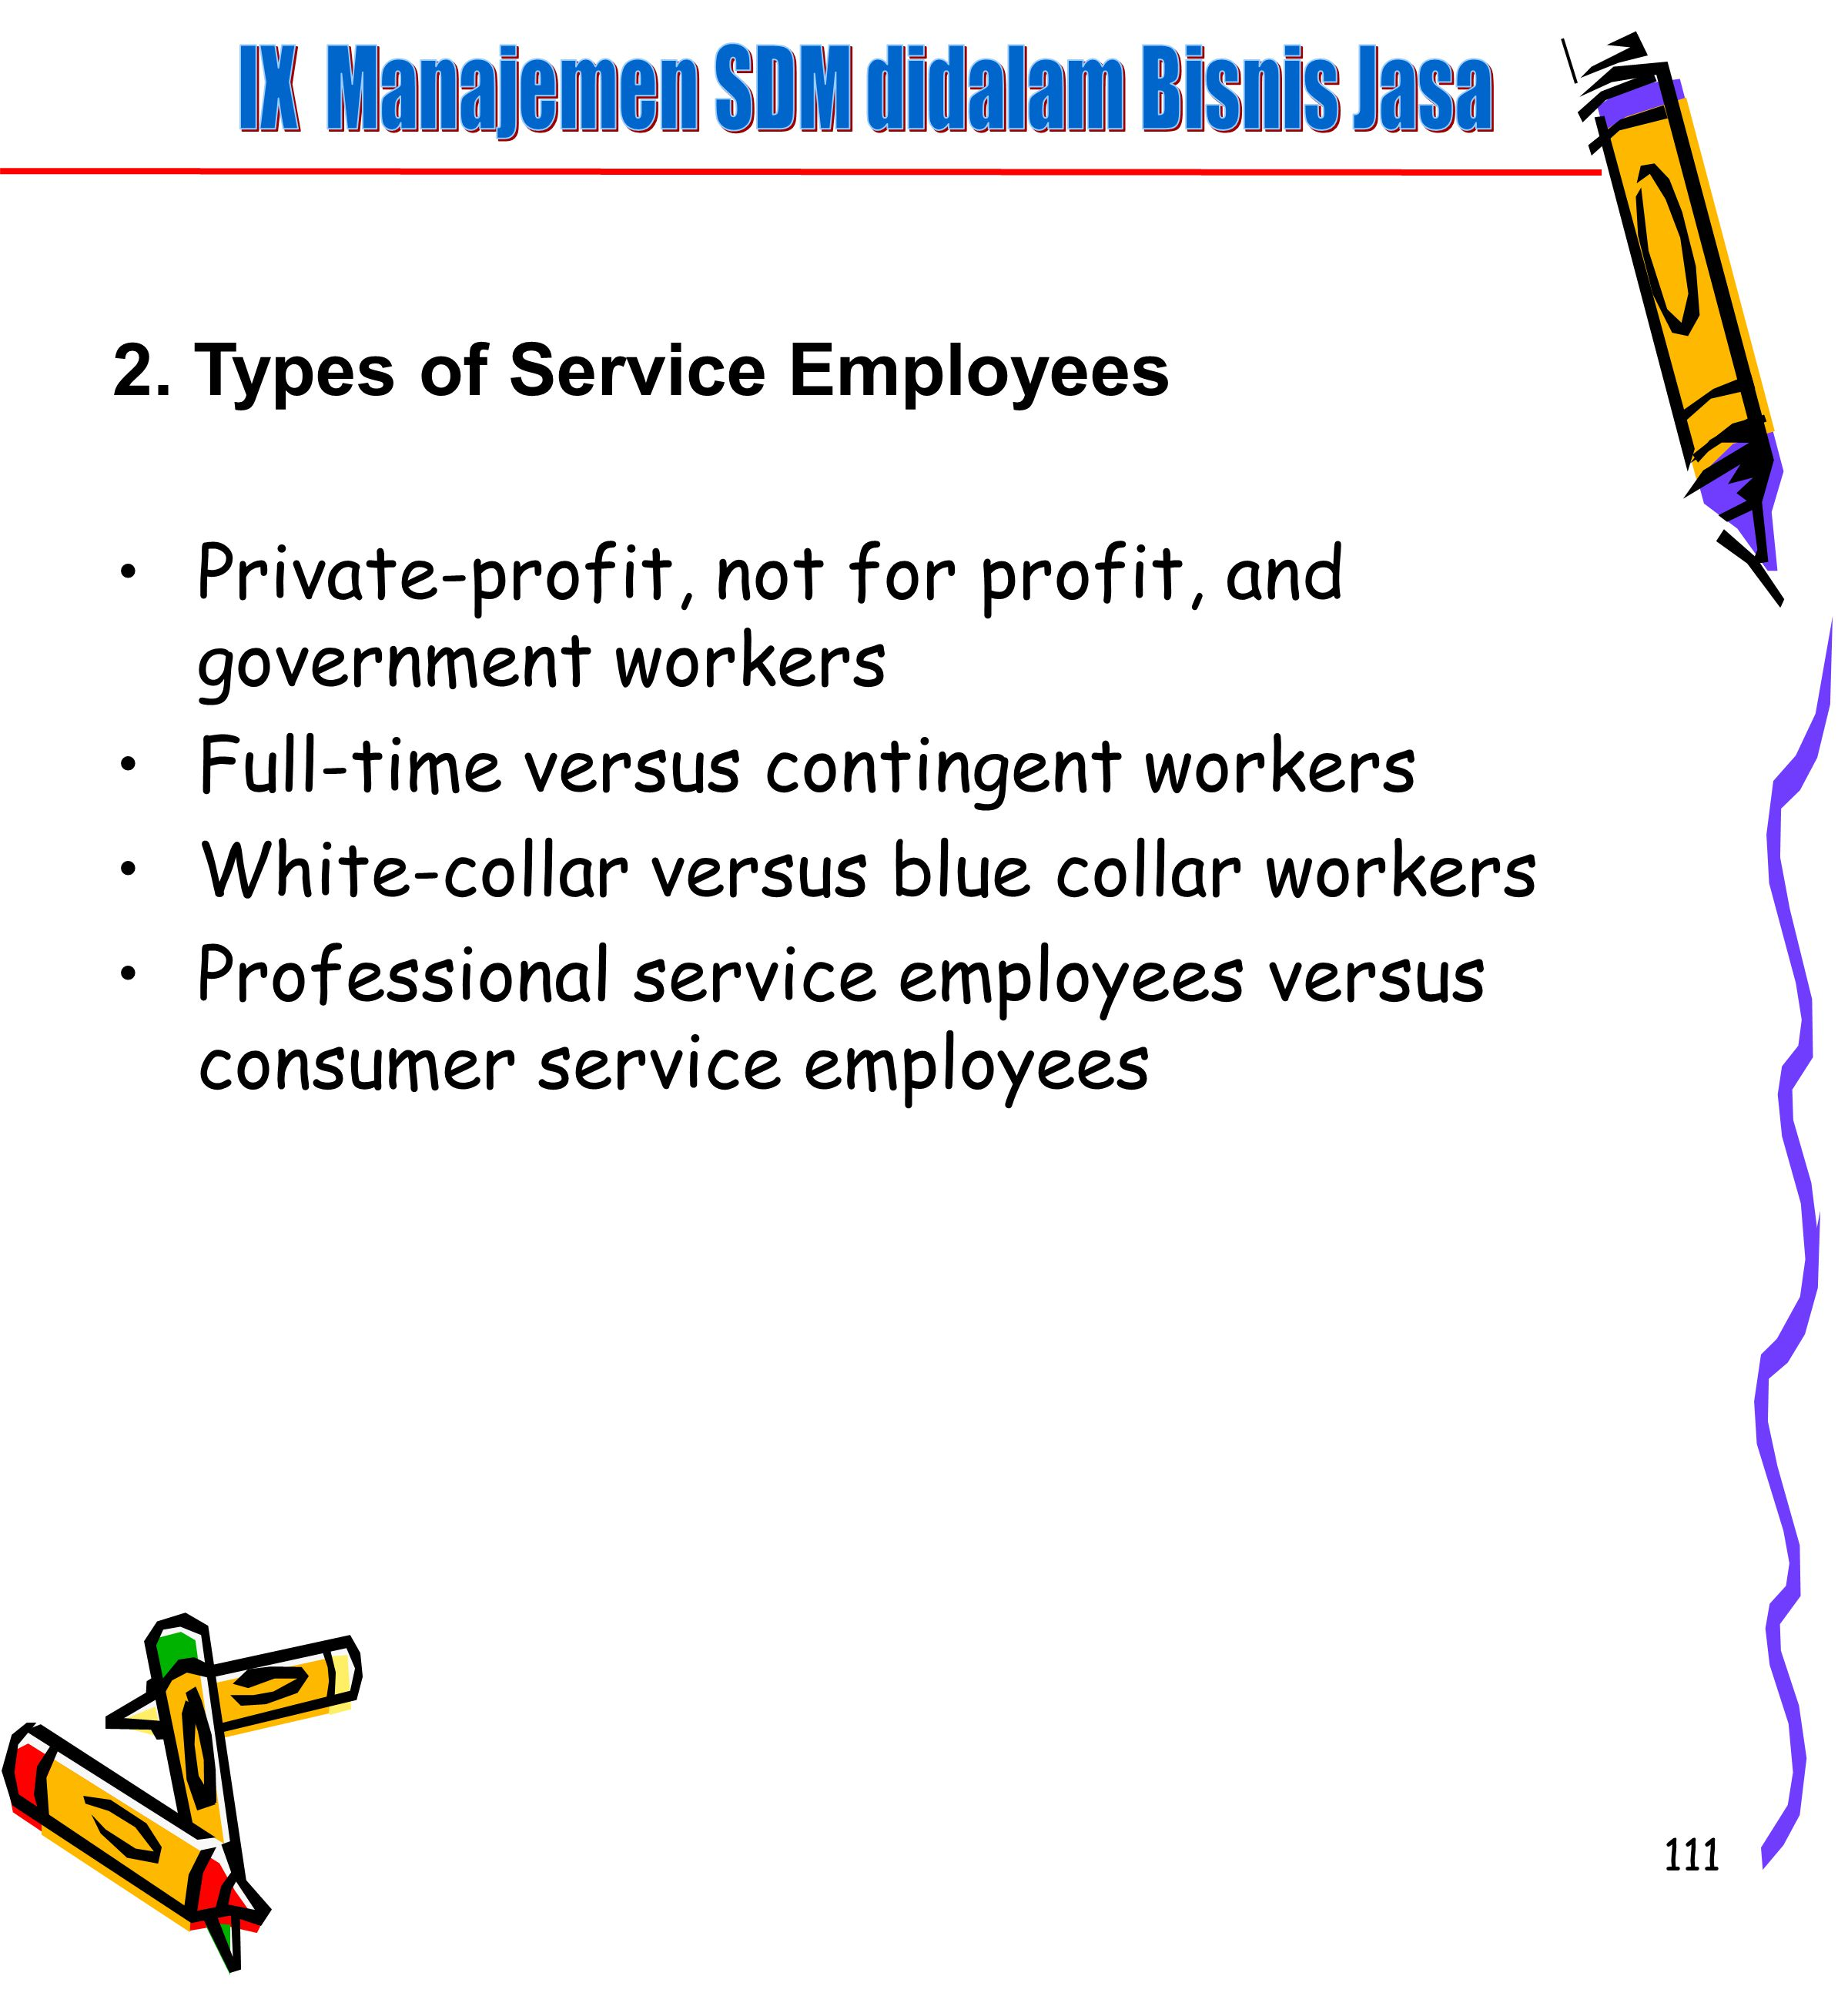 111 Private-profit, not for profit, and government workers Full-time versus contingent workers White-collar versus blue collar workers Professional service employees versus consumer service employees 2.